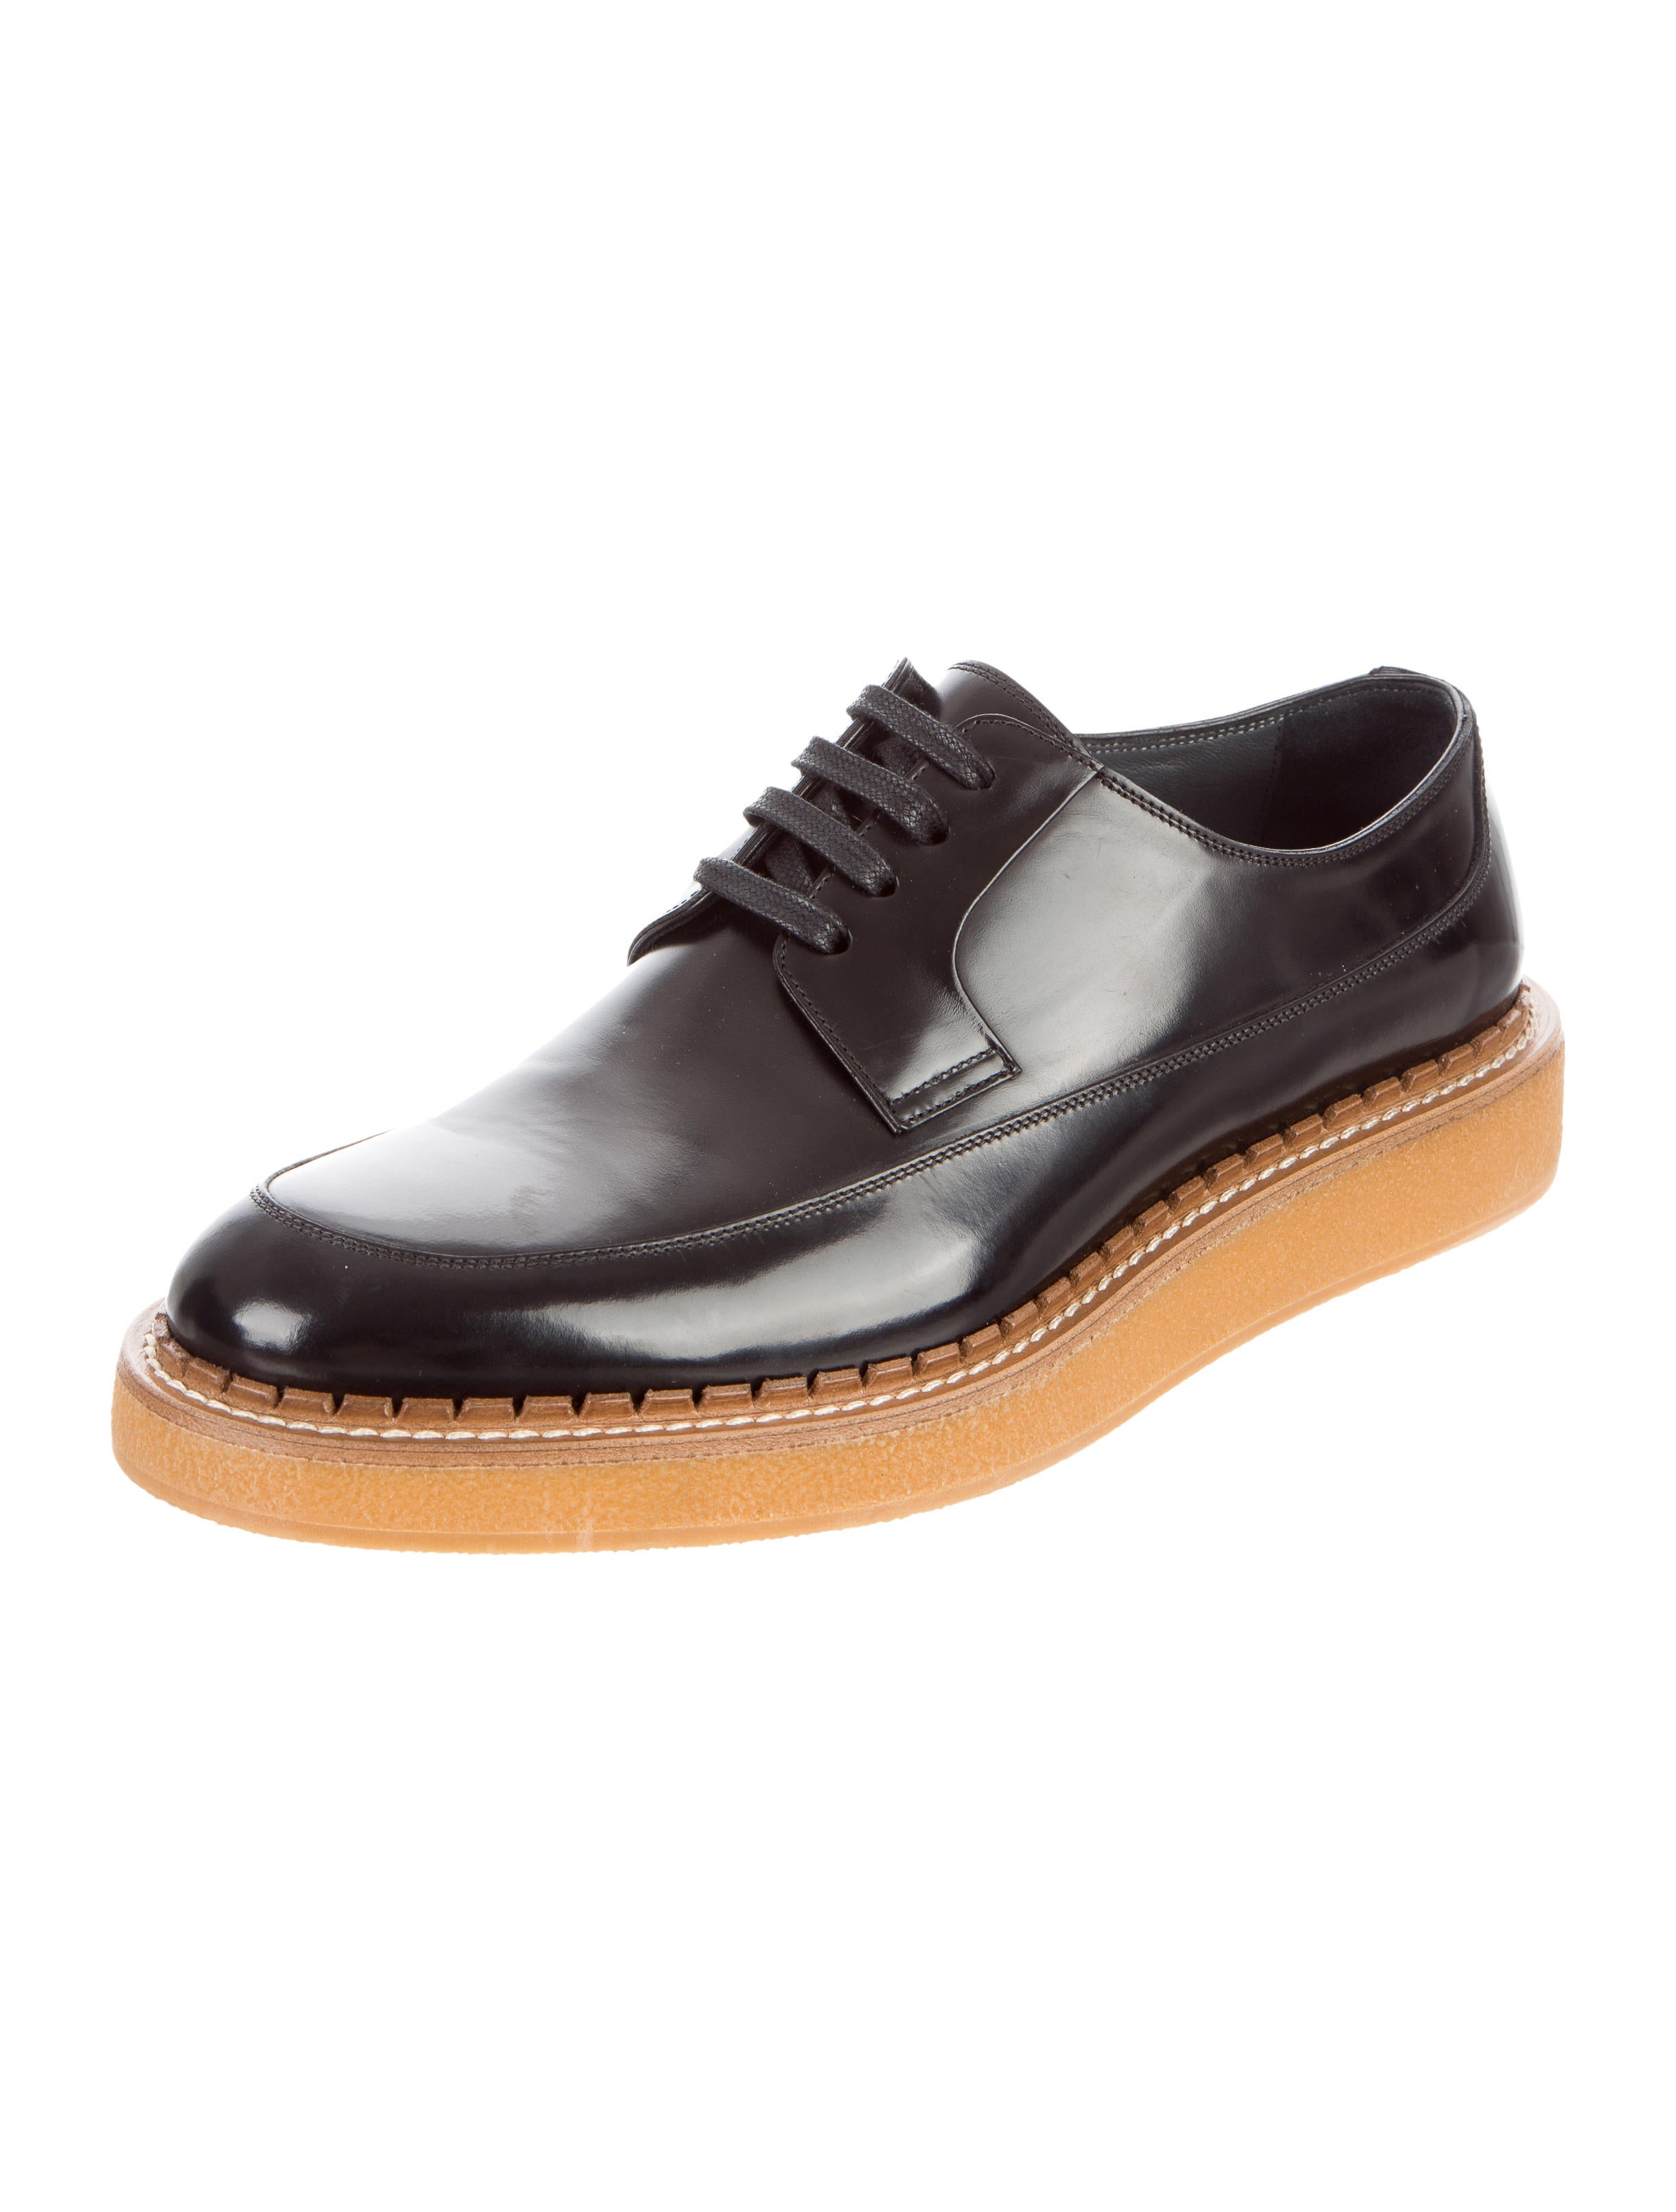 Black Derby Shoes Style